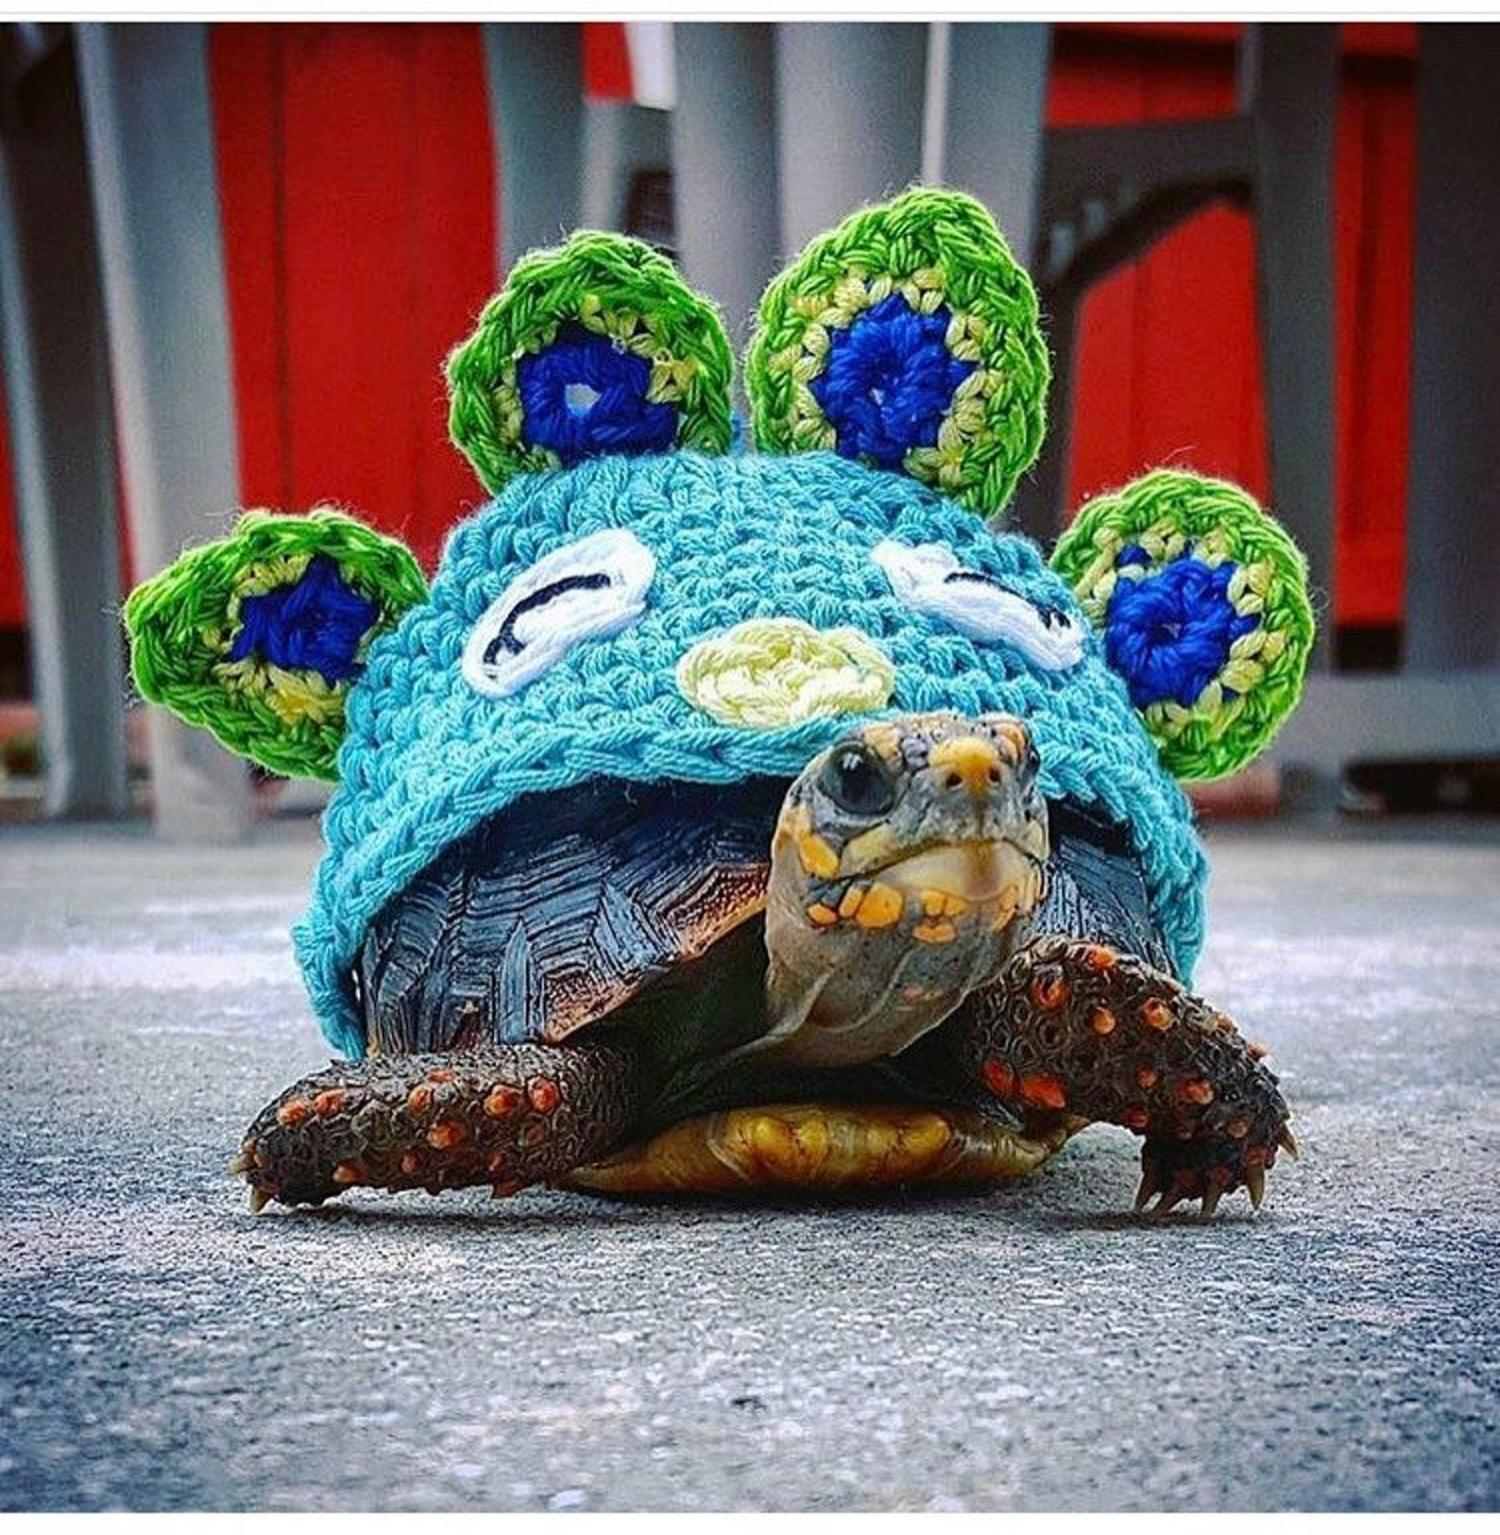 Crochet Turtle Sweater - Peacock tortoise cozy